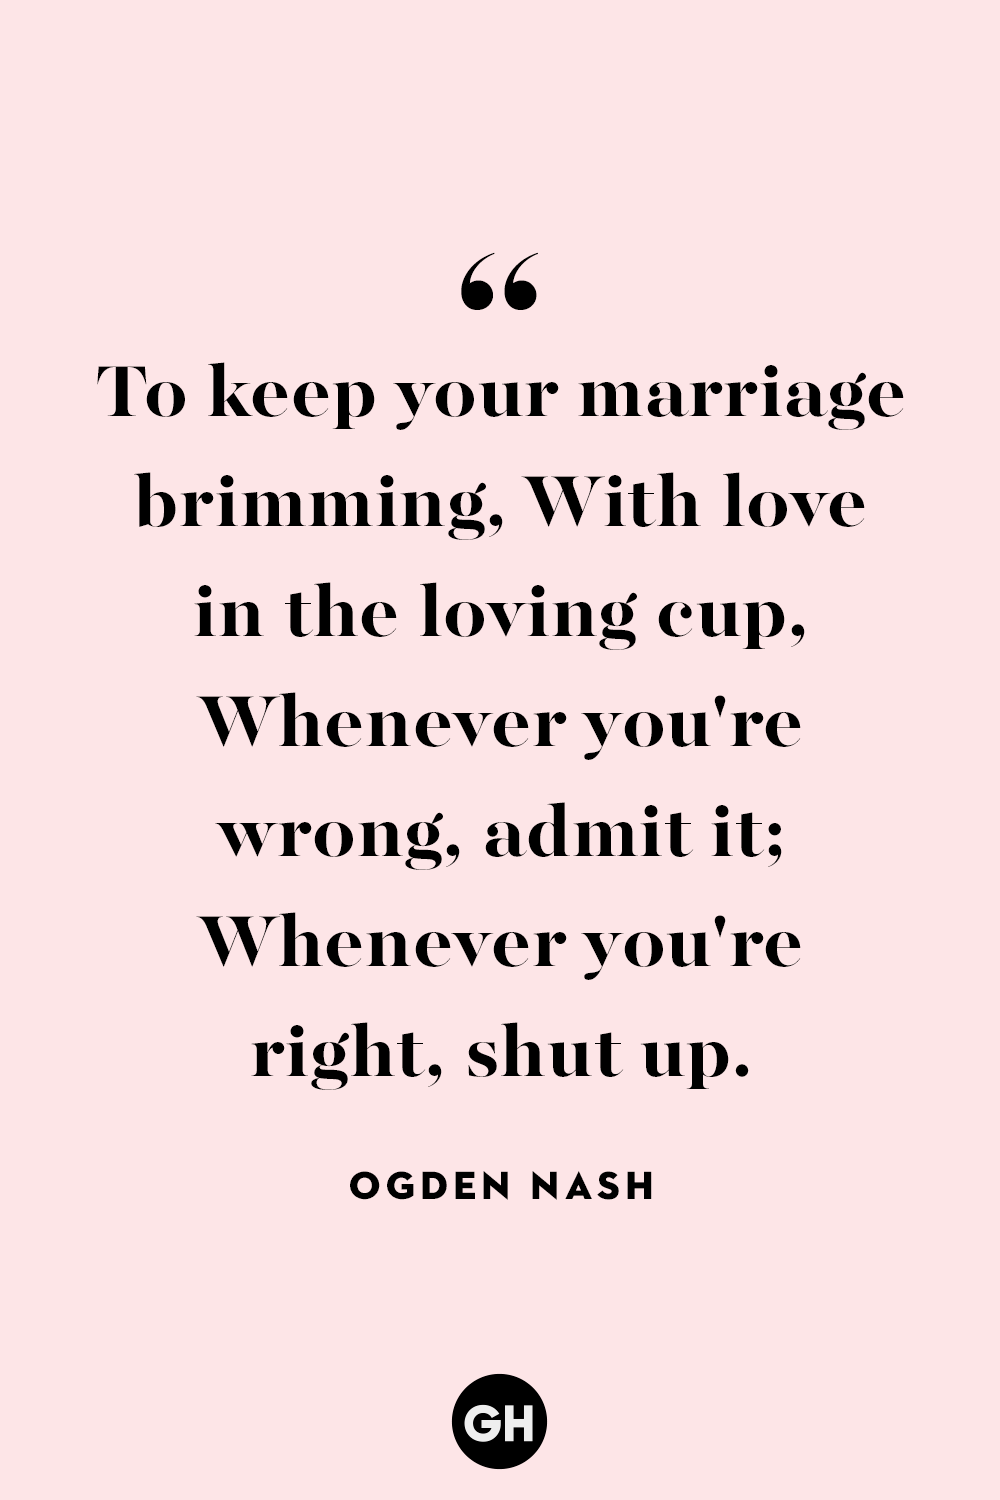 marriage quotes ogden nash